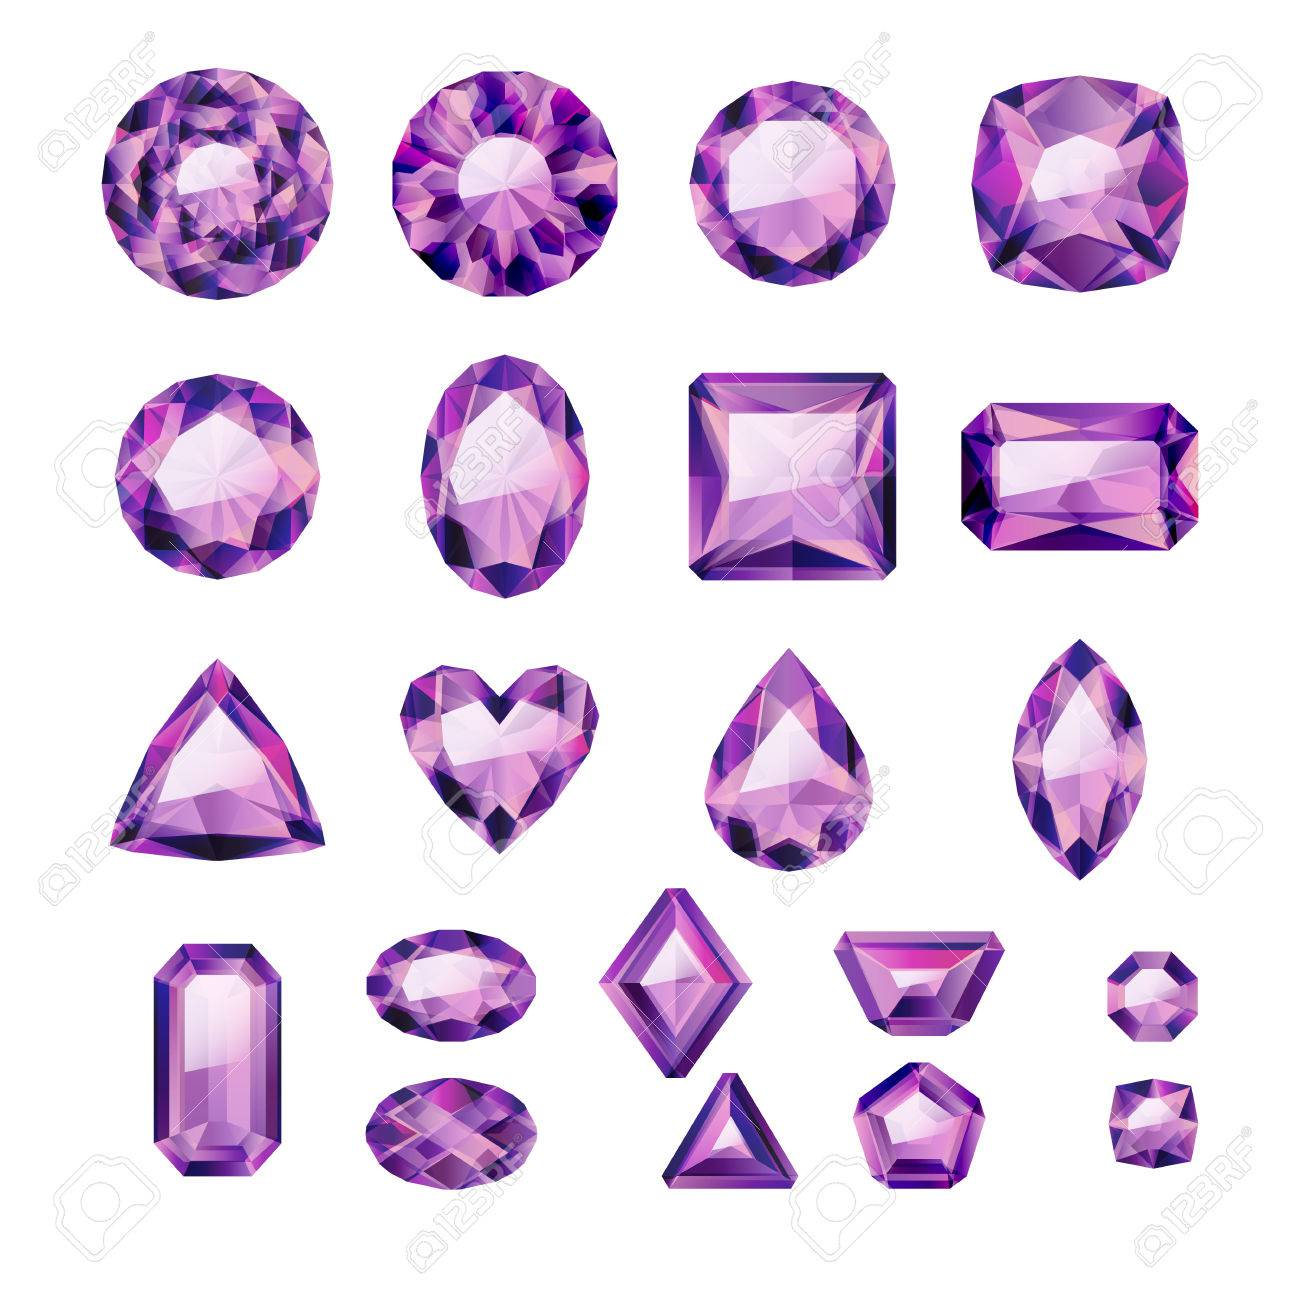 Set of realistic purple jewels. Colorful gemstones. Amethysts isolated on white background. - 54198878